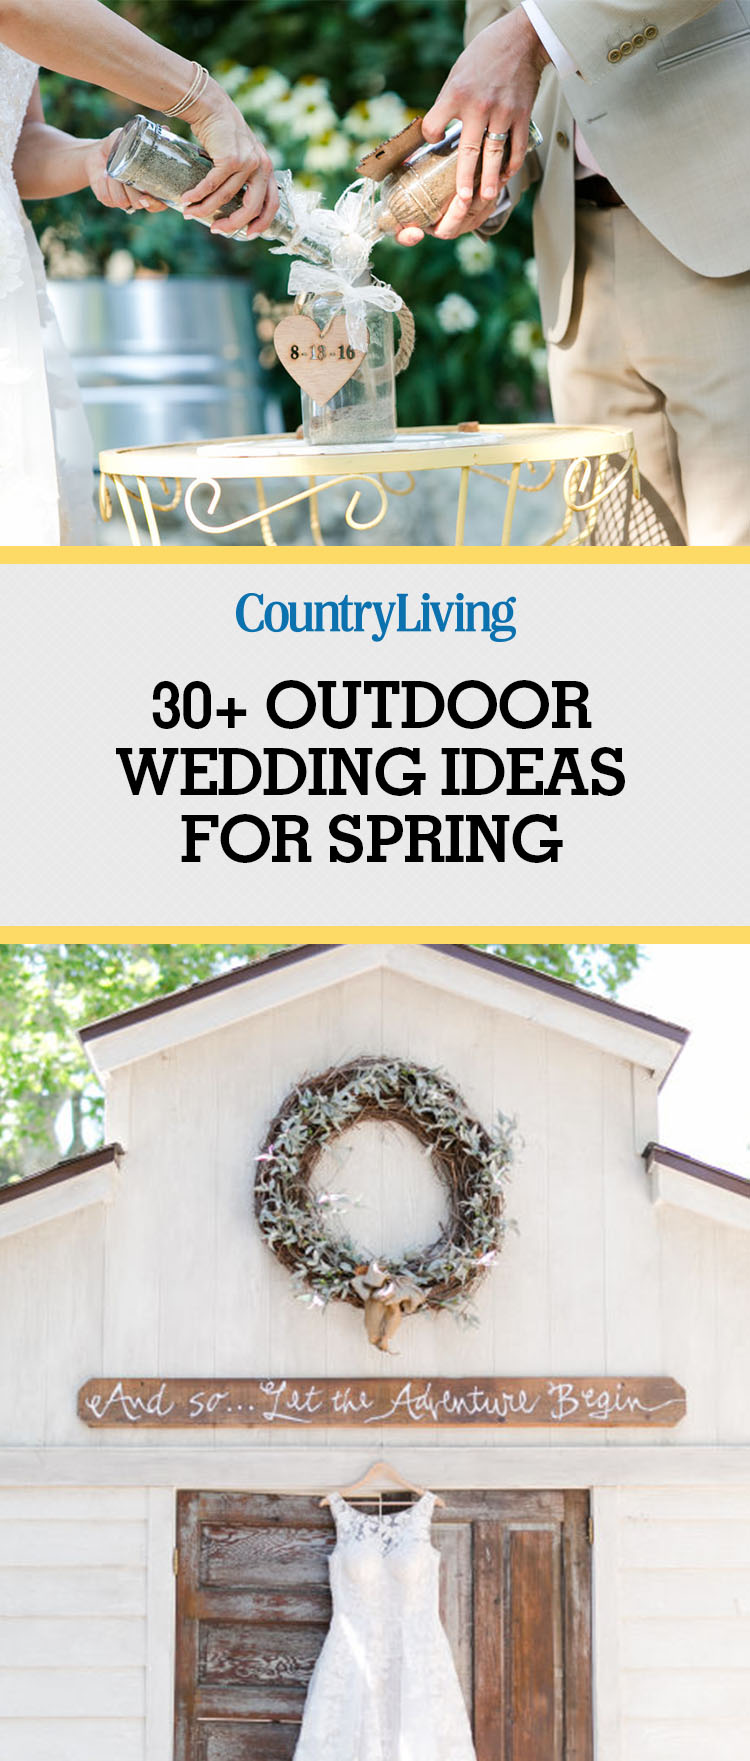 31 Outdoor Wedding Ideas Decorations for a Fun Outside Spring